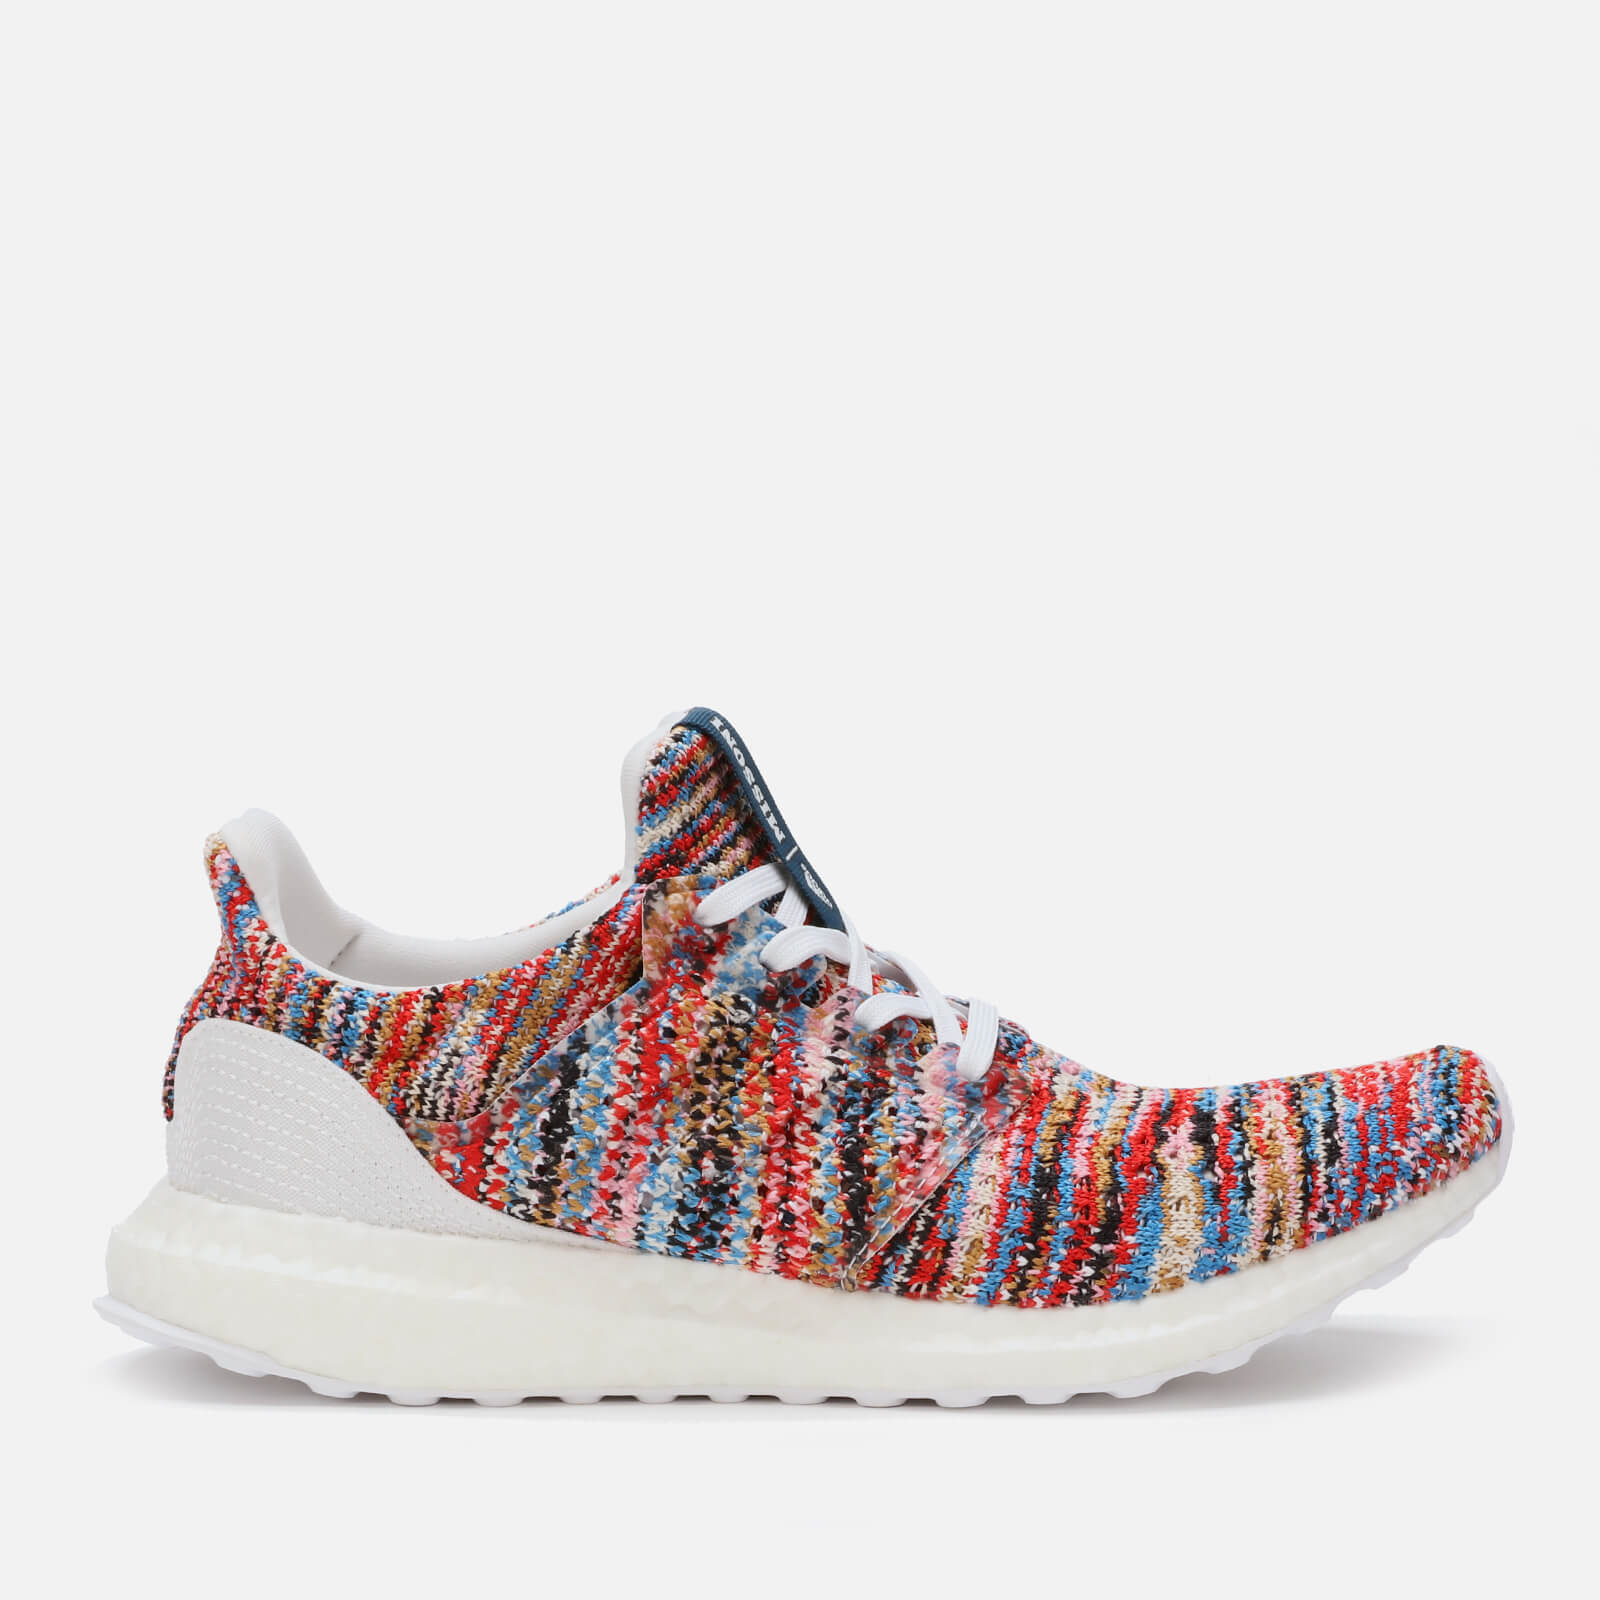 58aea305a3f adidas X Missoni Women s Ultraboost Clima Trainers - FTWR White Shock Cyan  - Free UK Delivery over £50